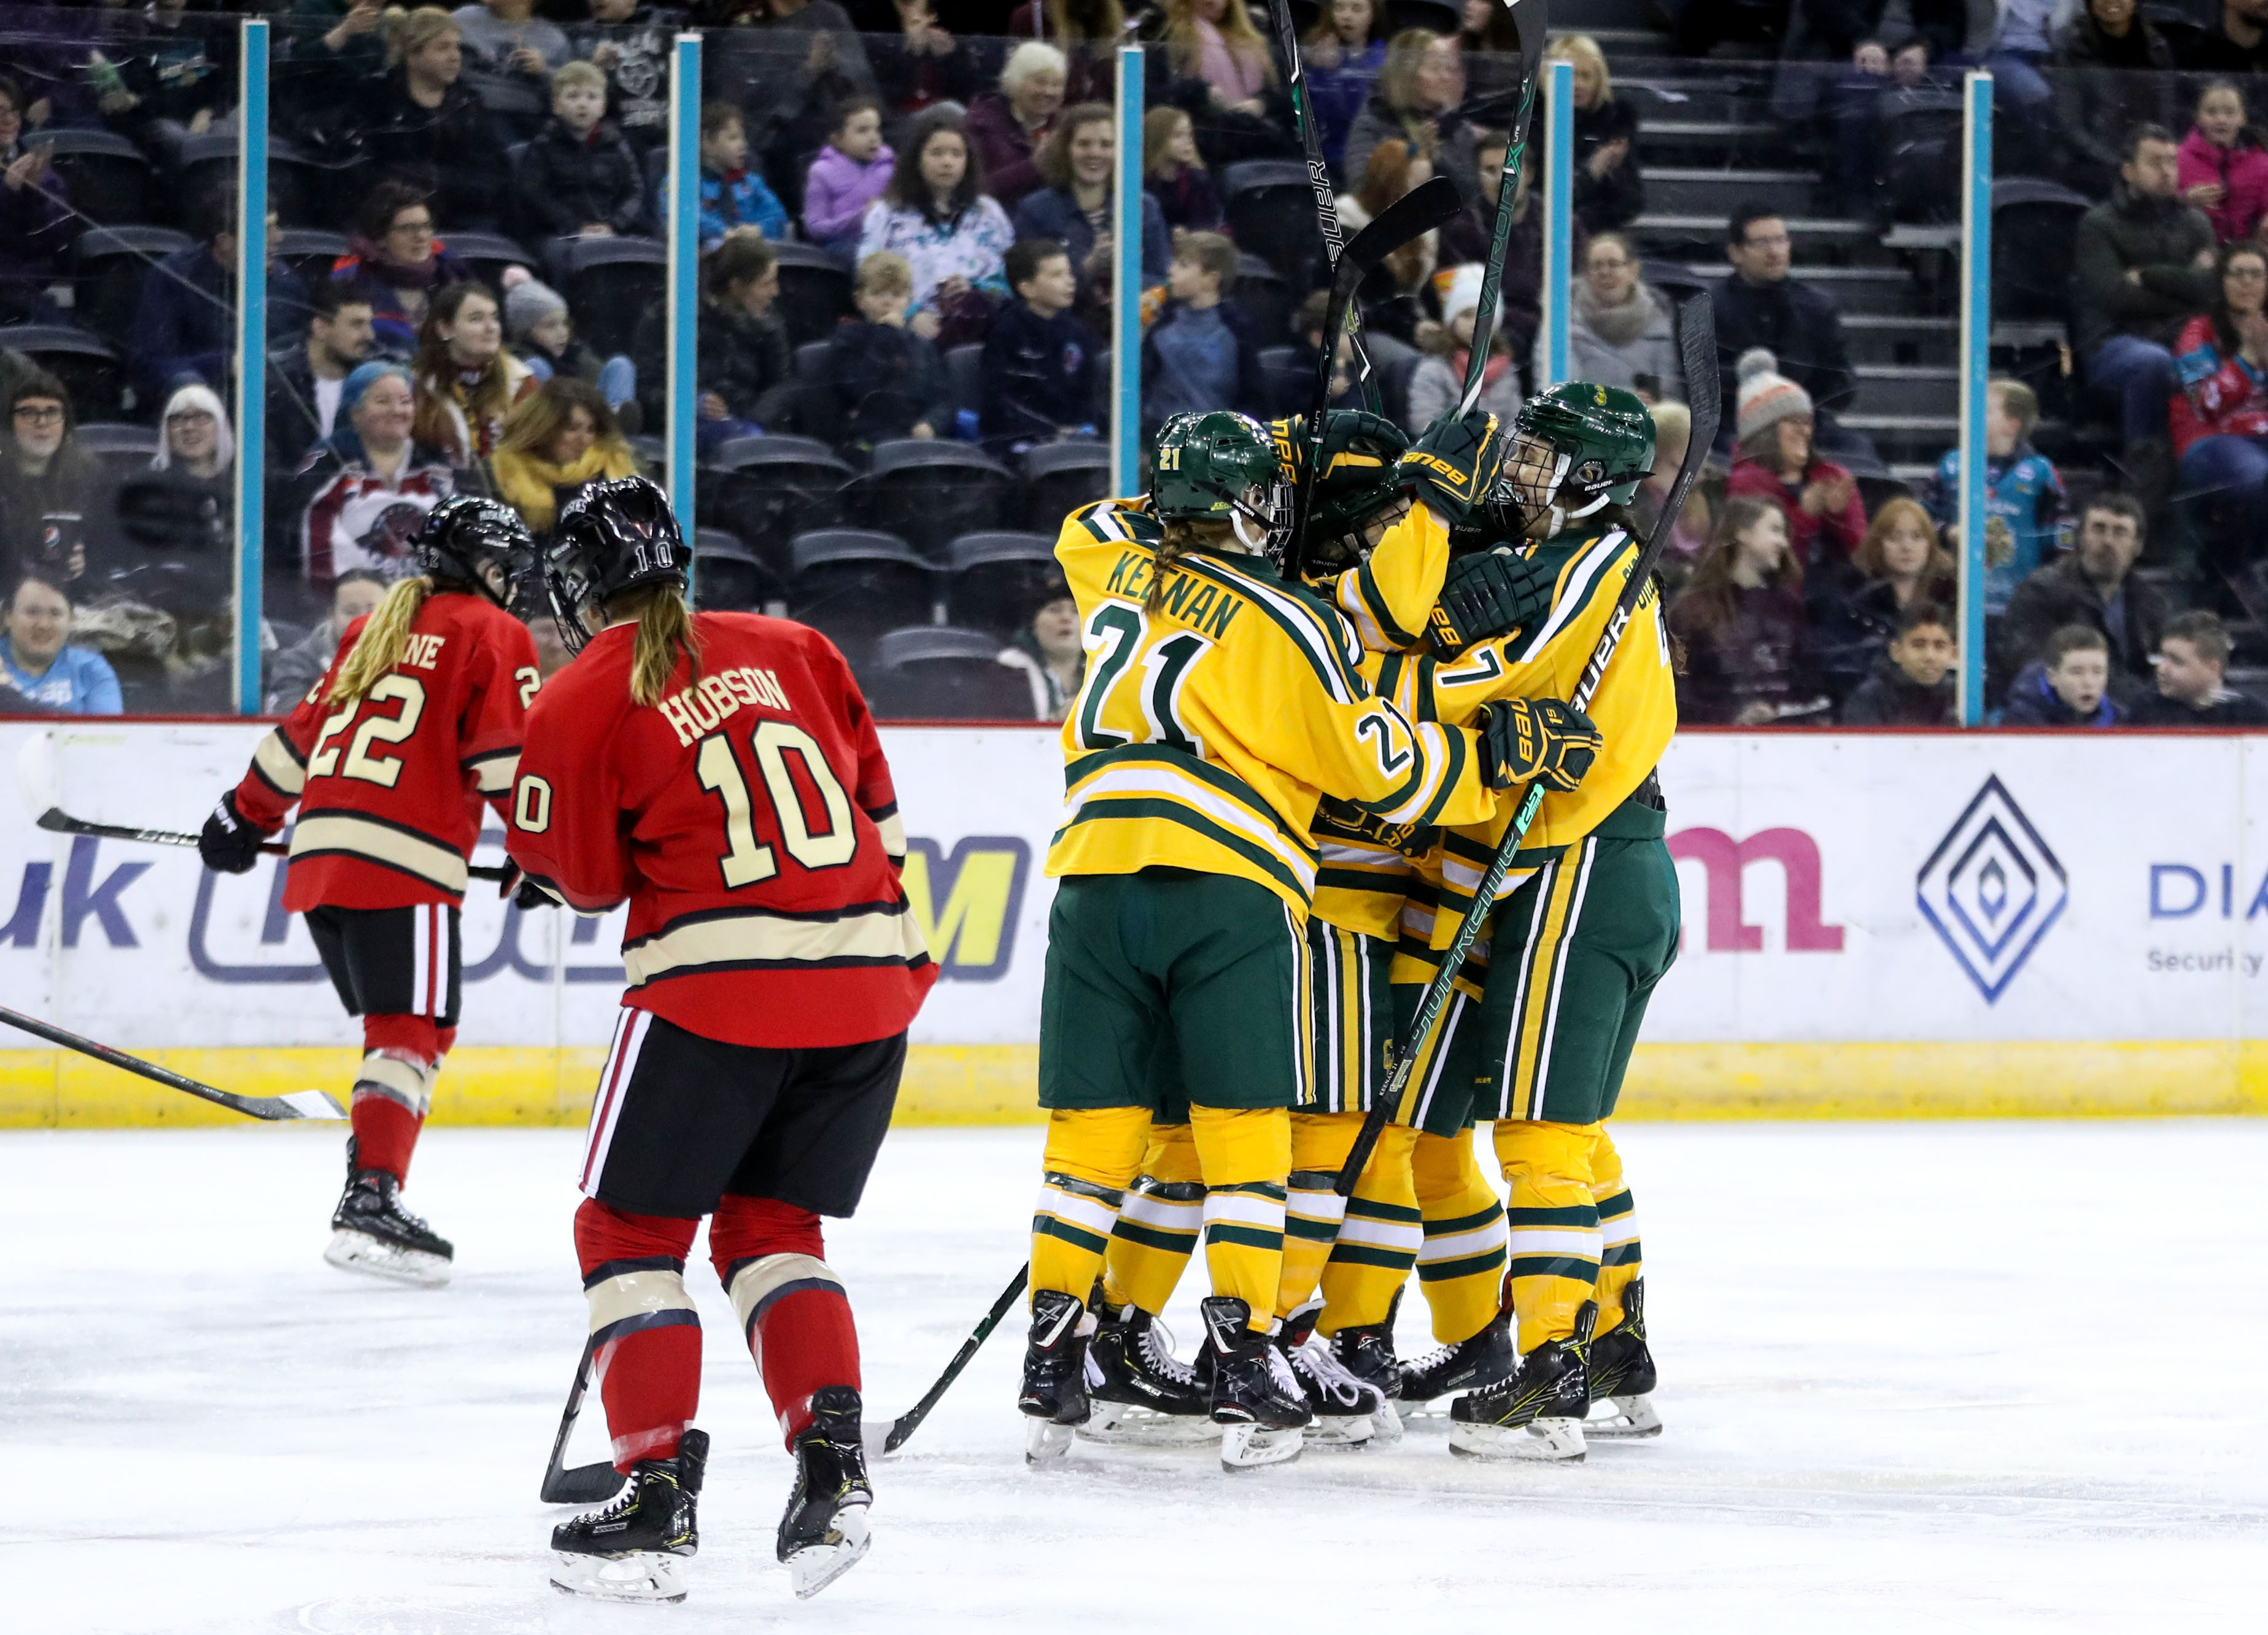 Northeastern University v Clarkson University - WomenÕs Friendship Series